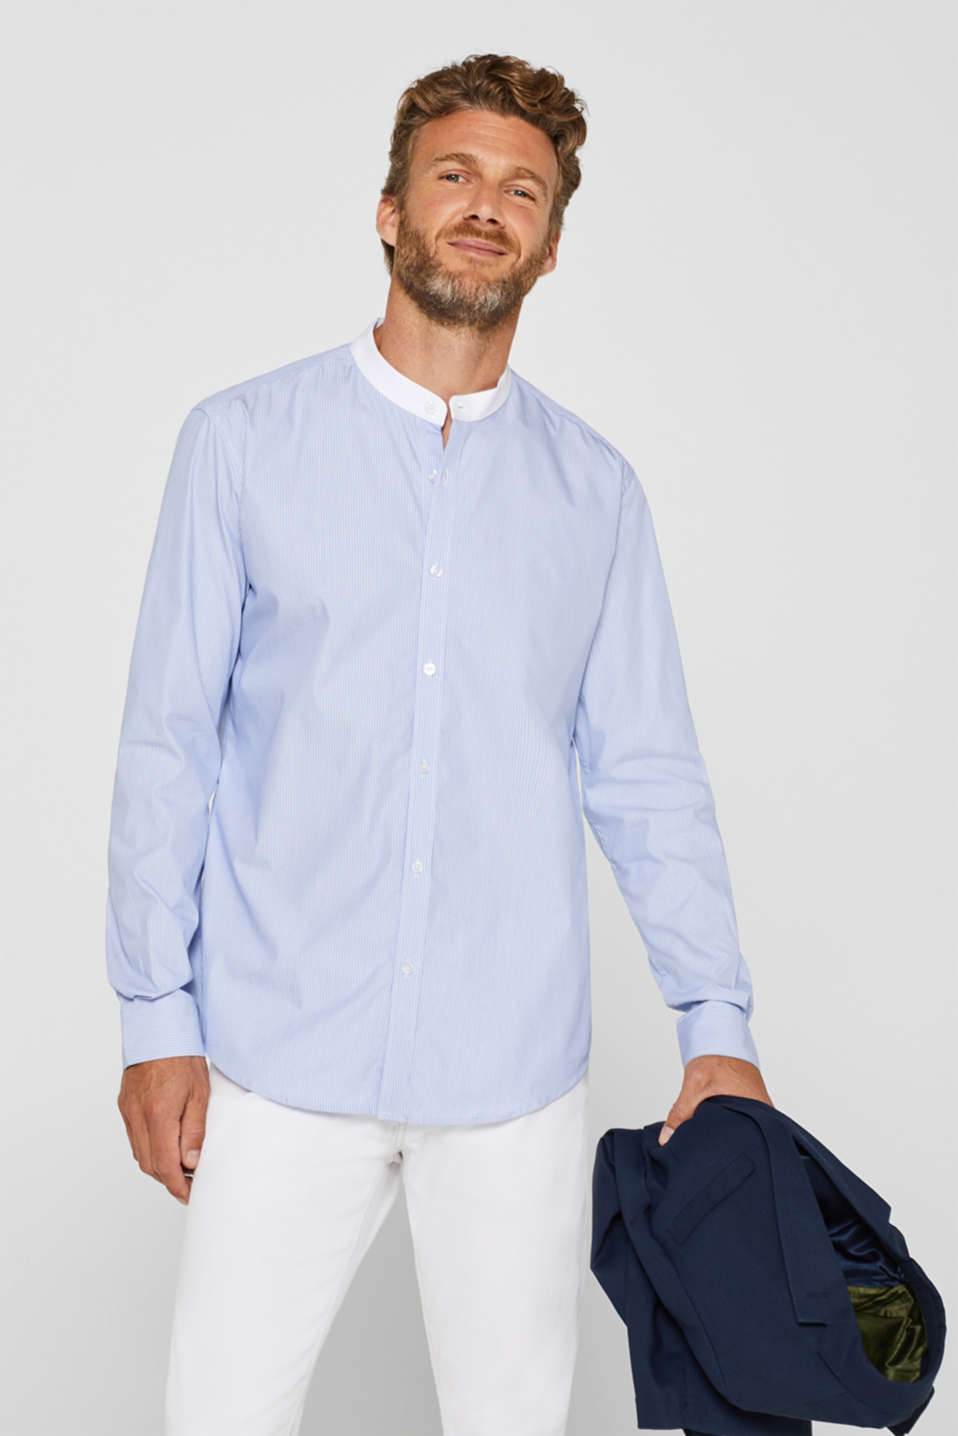 Esprit - Band collar shirt with COOLMAX® technology